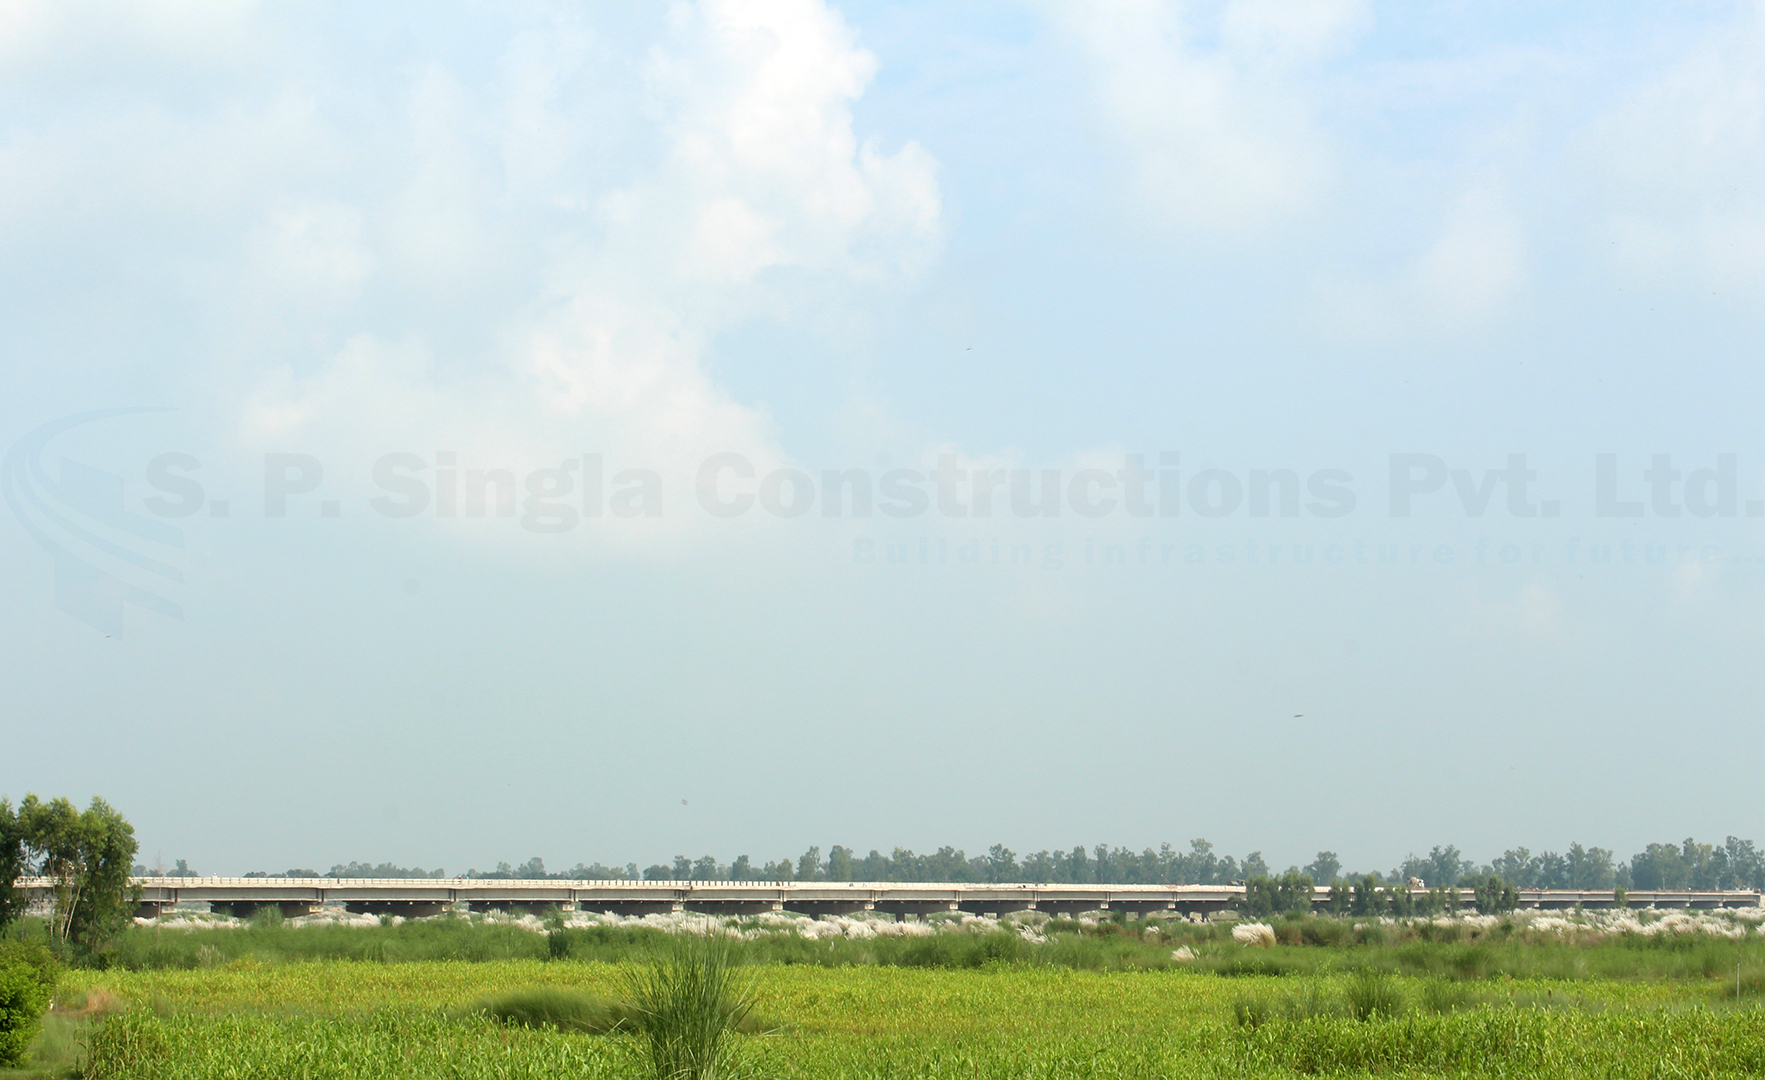 9.90 Km Long 4 Lane Bypass from Km 158.350 to 166.925 of NH-15 (new NH No. 54) at Harike in Punjab on EPC mode